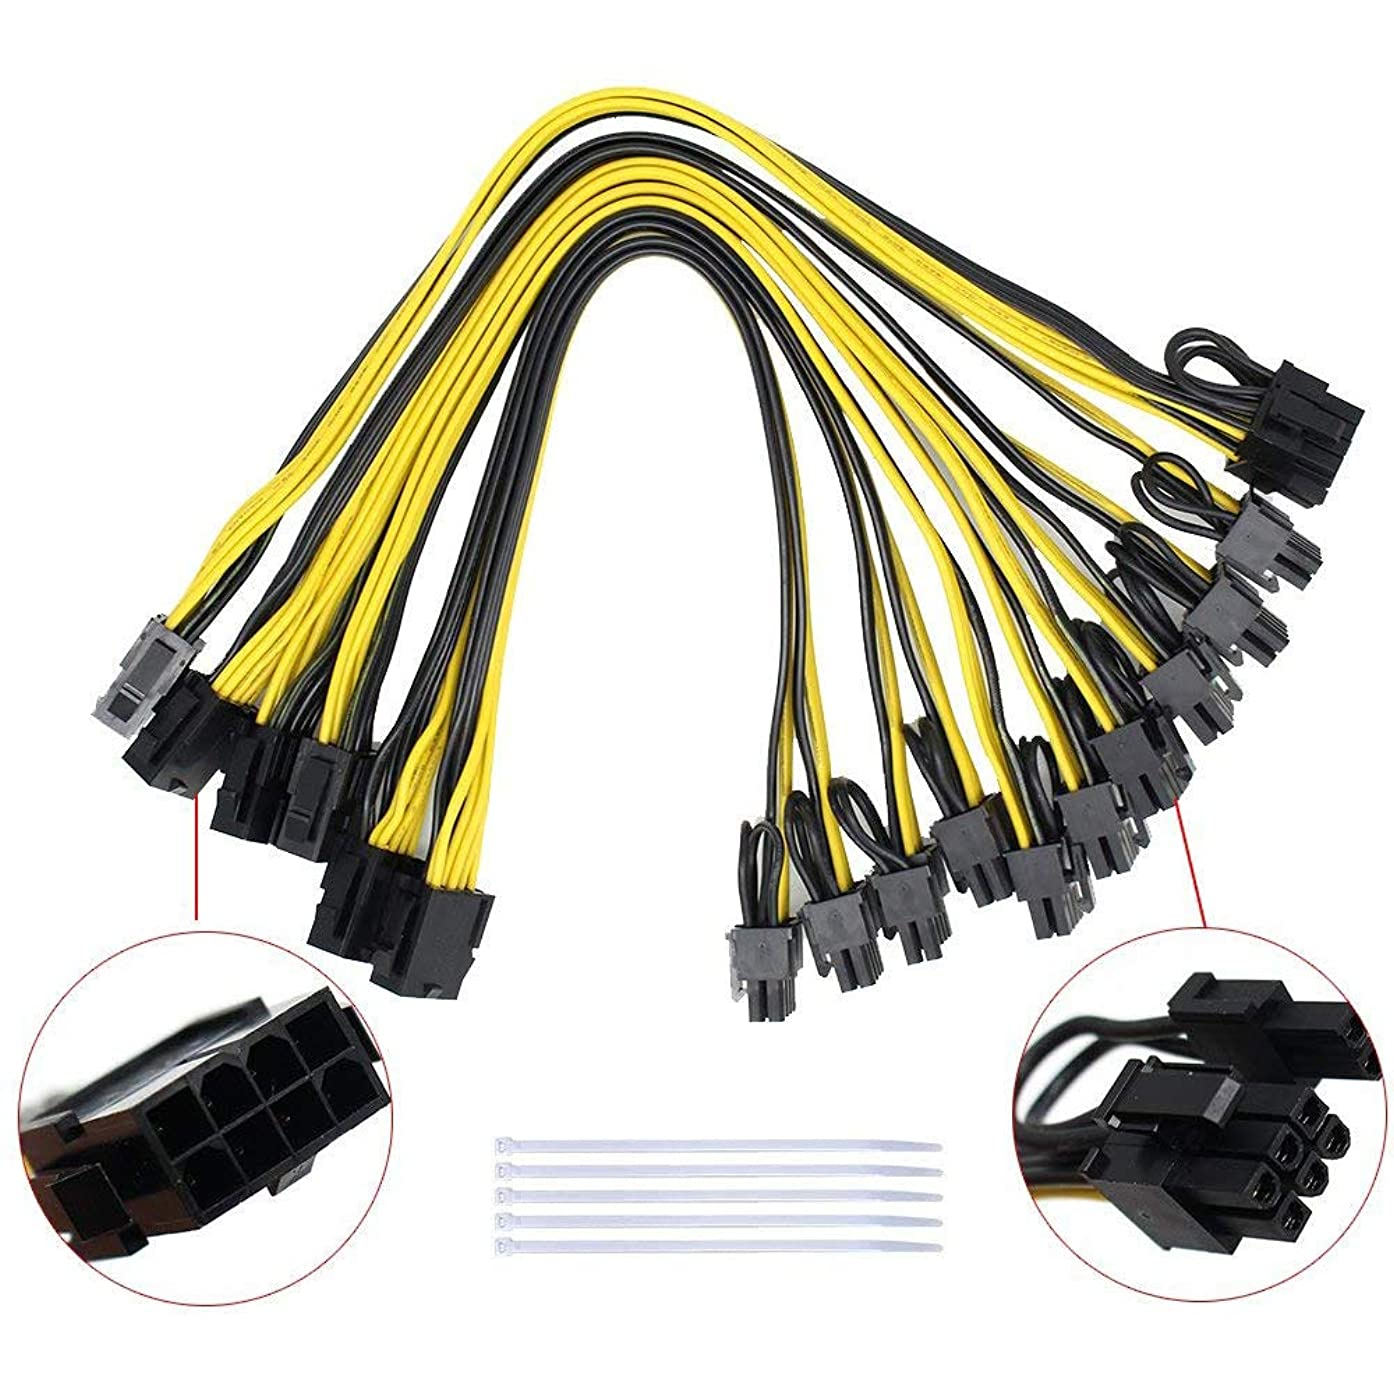 S-Union [6PCs] 18AWG 8Pin to Dual 8 (6+2)Pin Power Supply Cable for CPU Splitter PCI-E Graphics Card,Power Extension Cable 8Pin CPU molex,GPU Mining ZEC Ethreum (11.8Inch 30cm,with 5 Nylon Cable Ties)